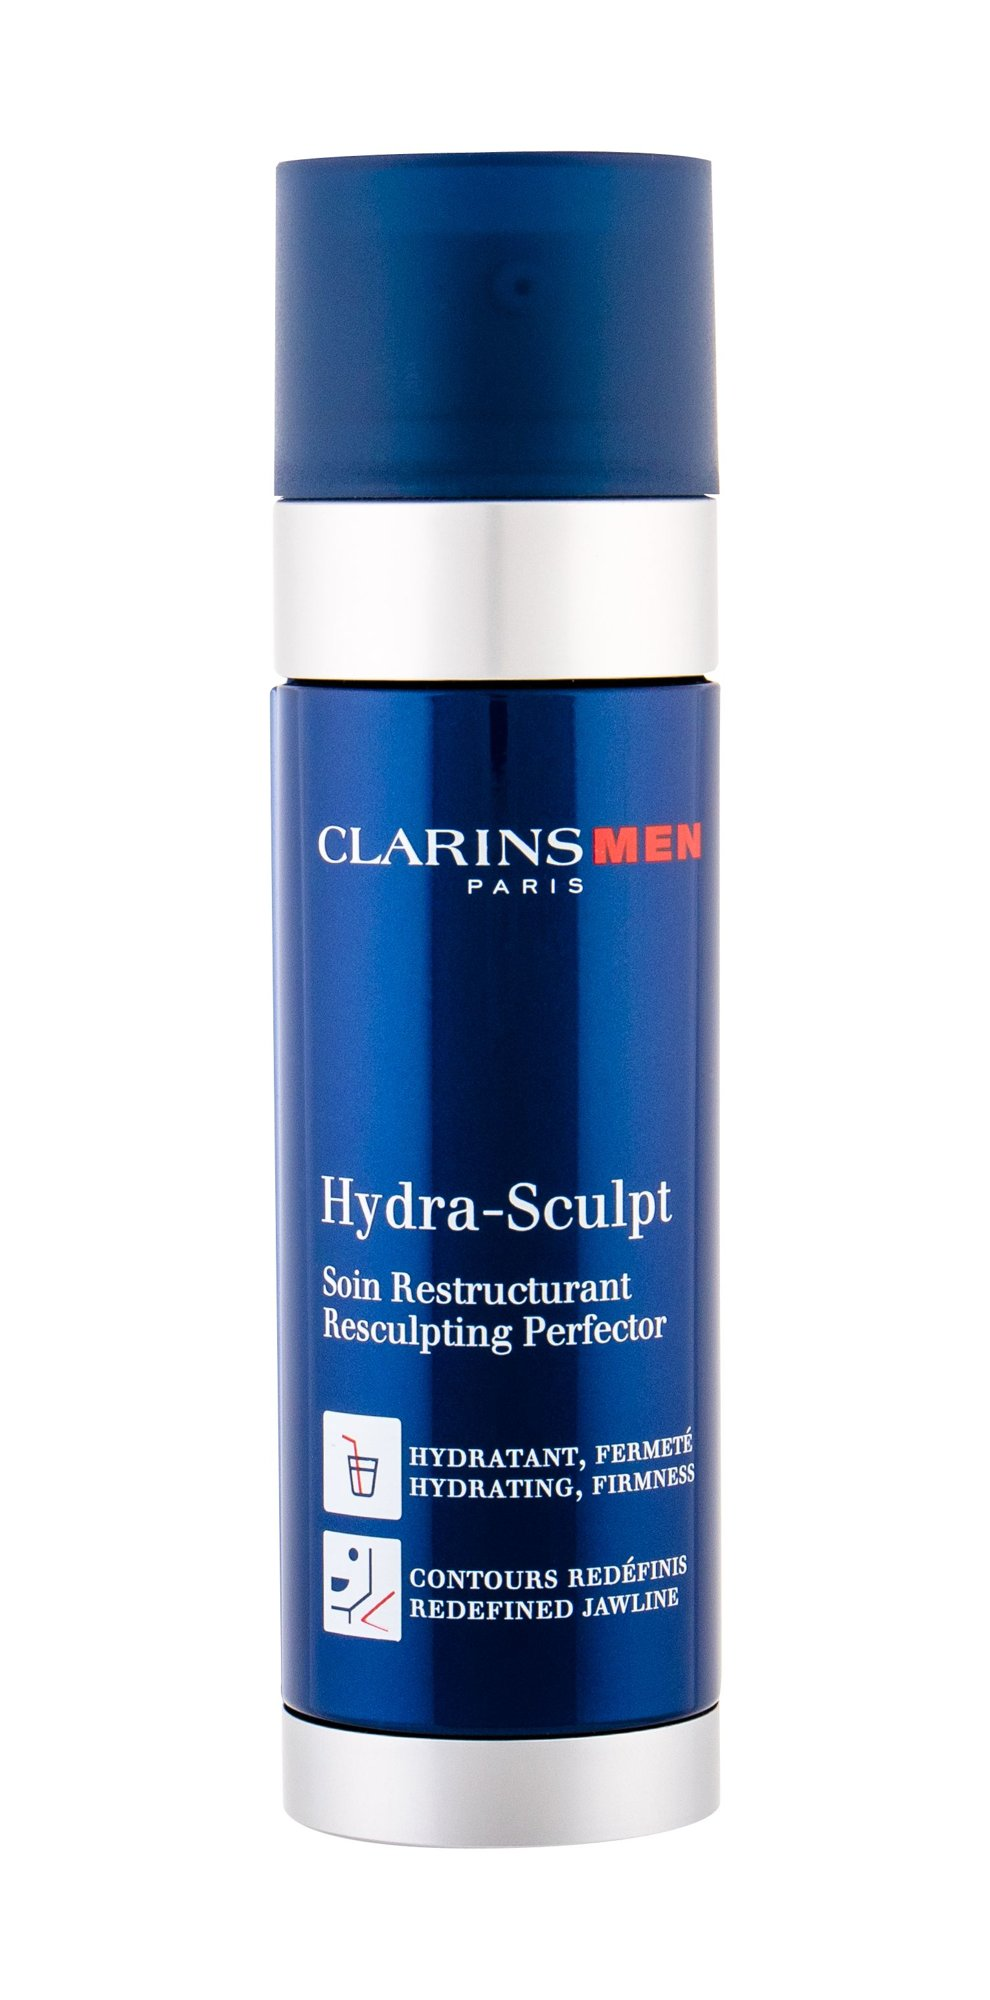 Clarins Men Facial Gel 50ml